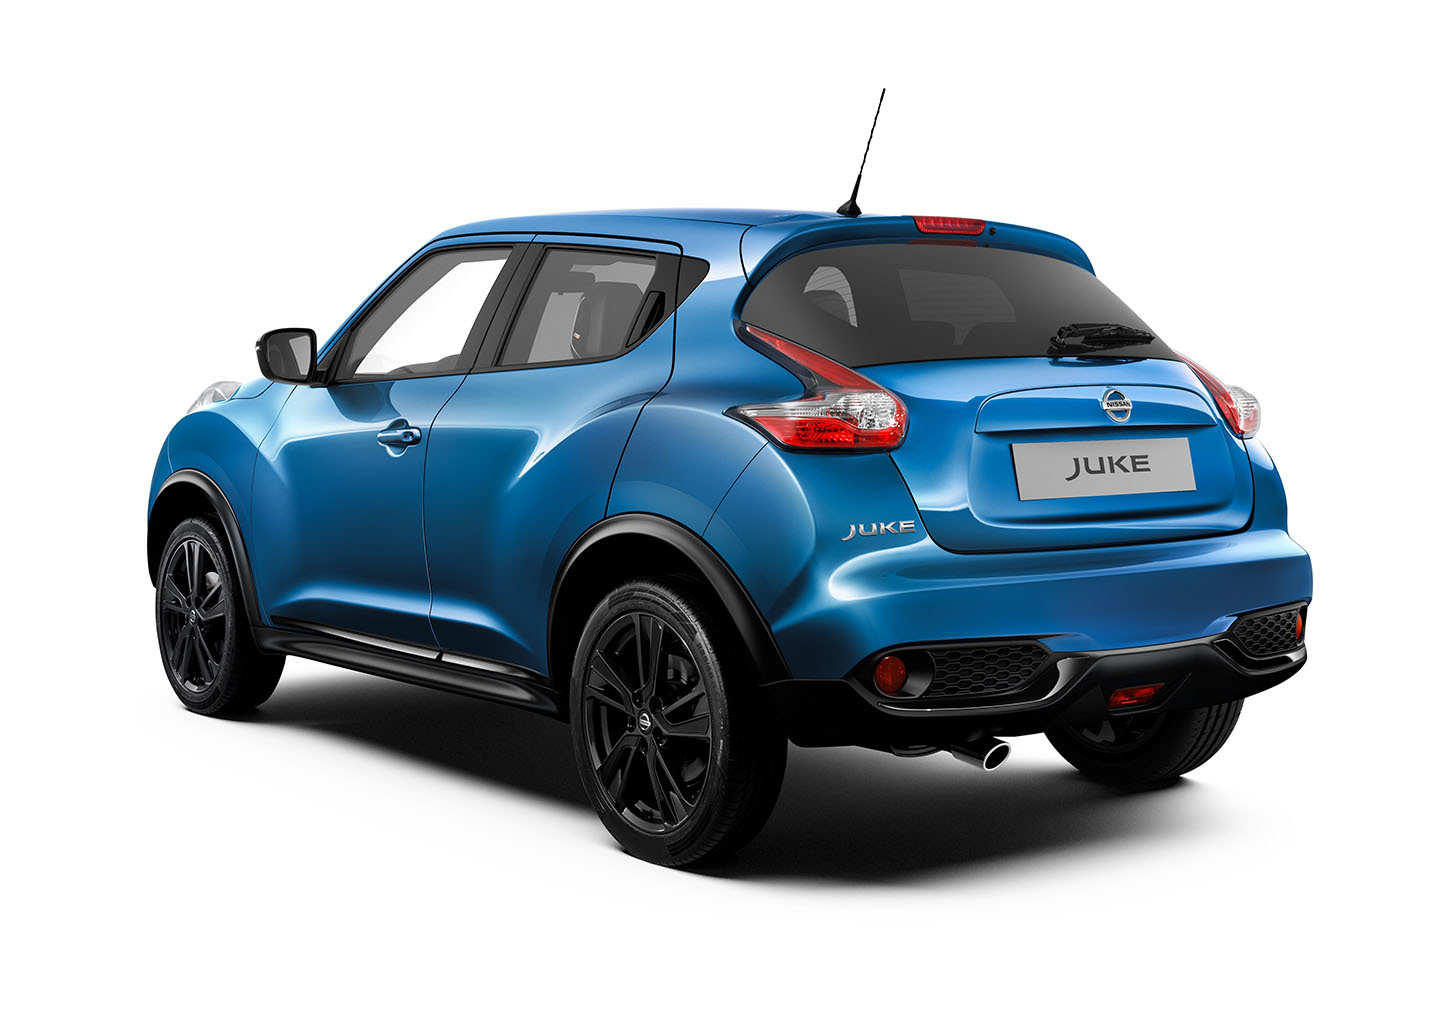 nissan actualiza con un toque de color a su nissan juke 2018 foto 3 de 12. Black Bedroom Furniture Sets. Home Design Ideas